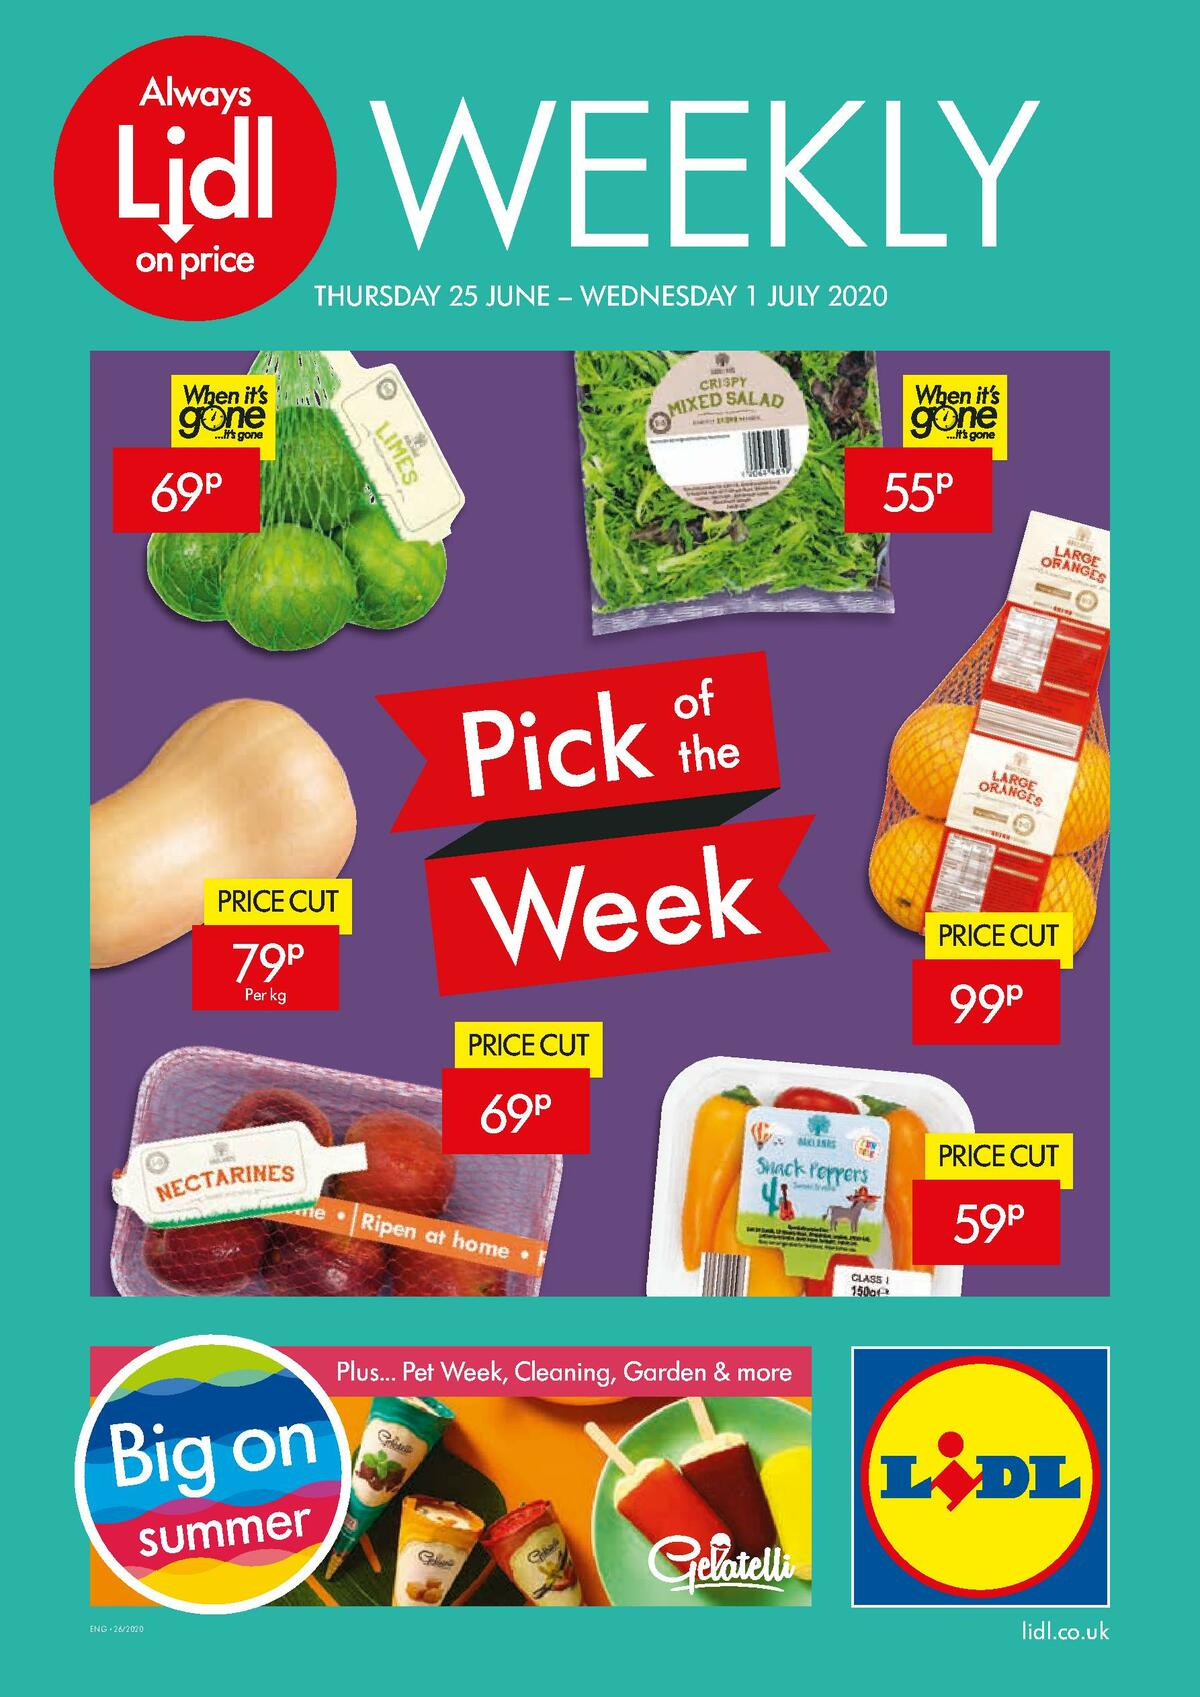 LIDL Offers from June 25